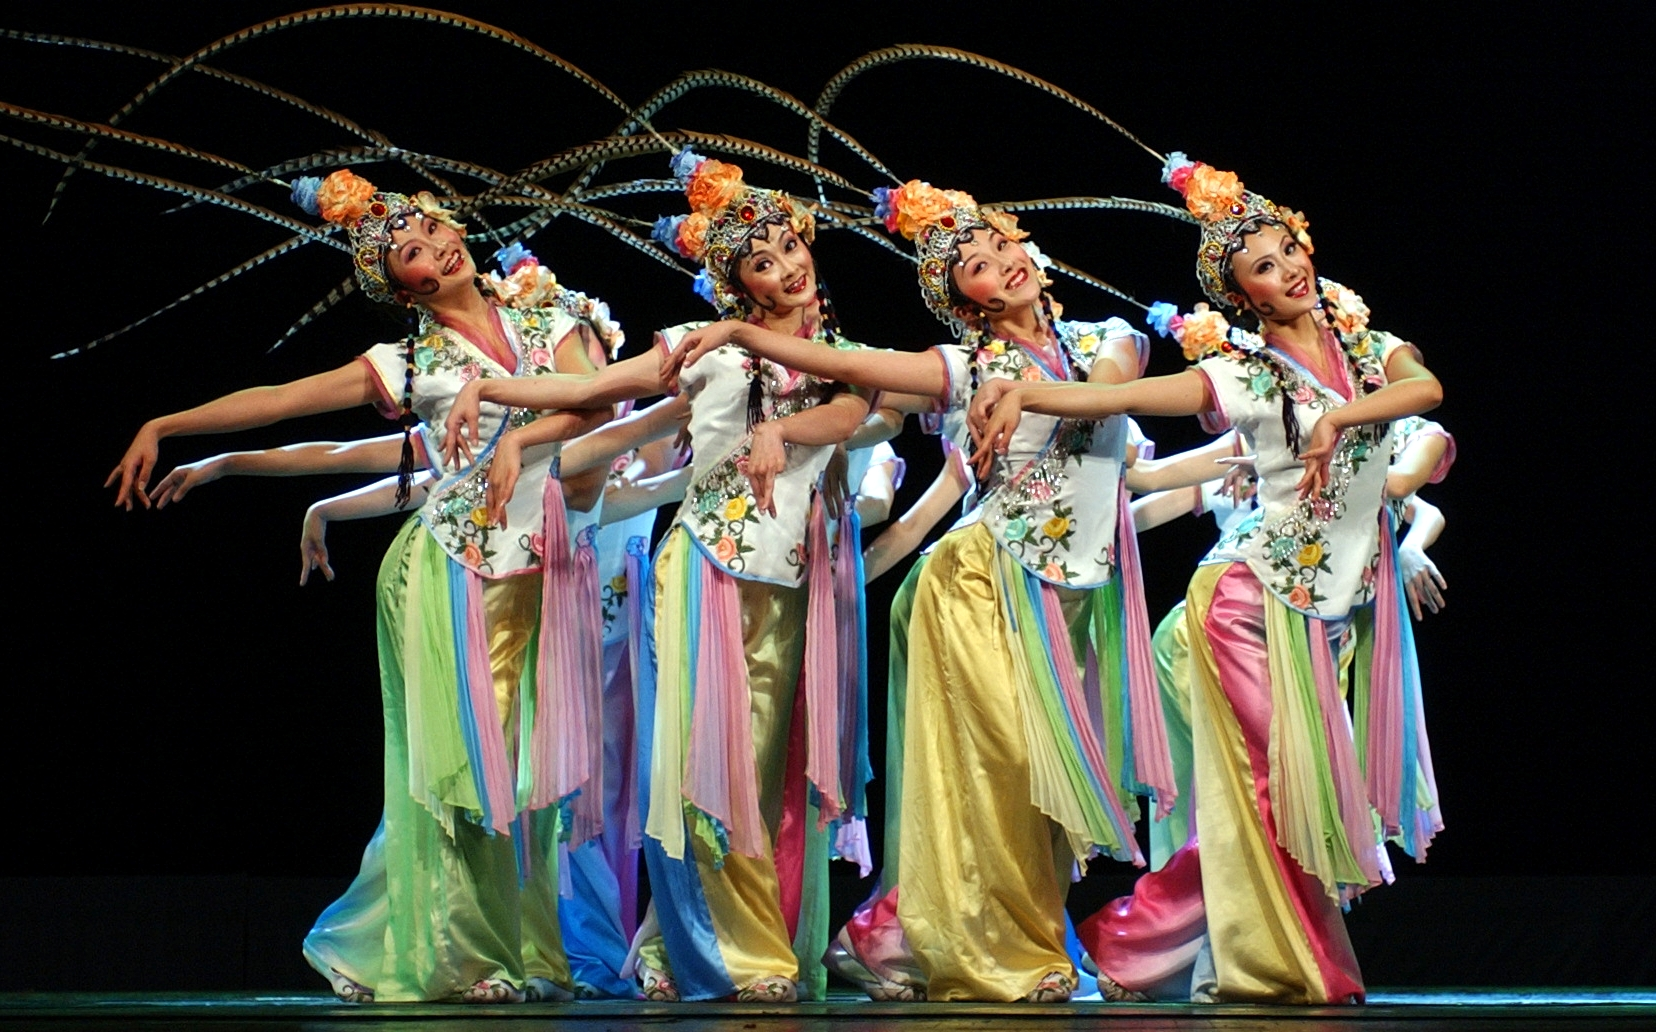 chinese culture dance - photo #41